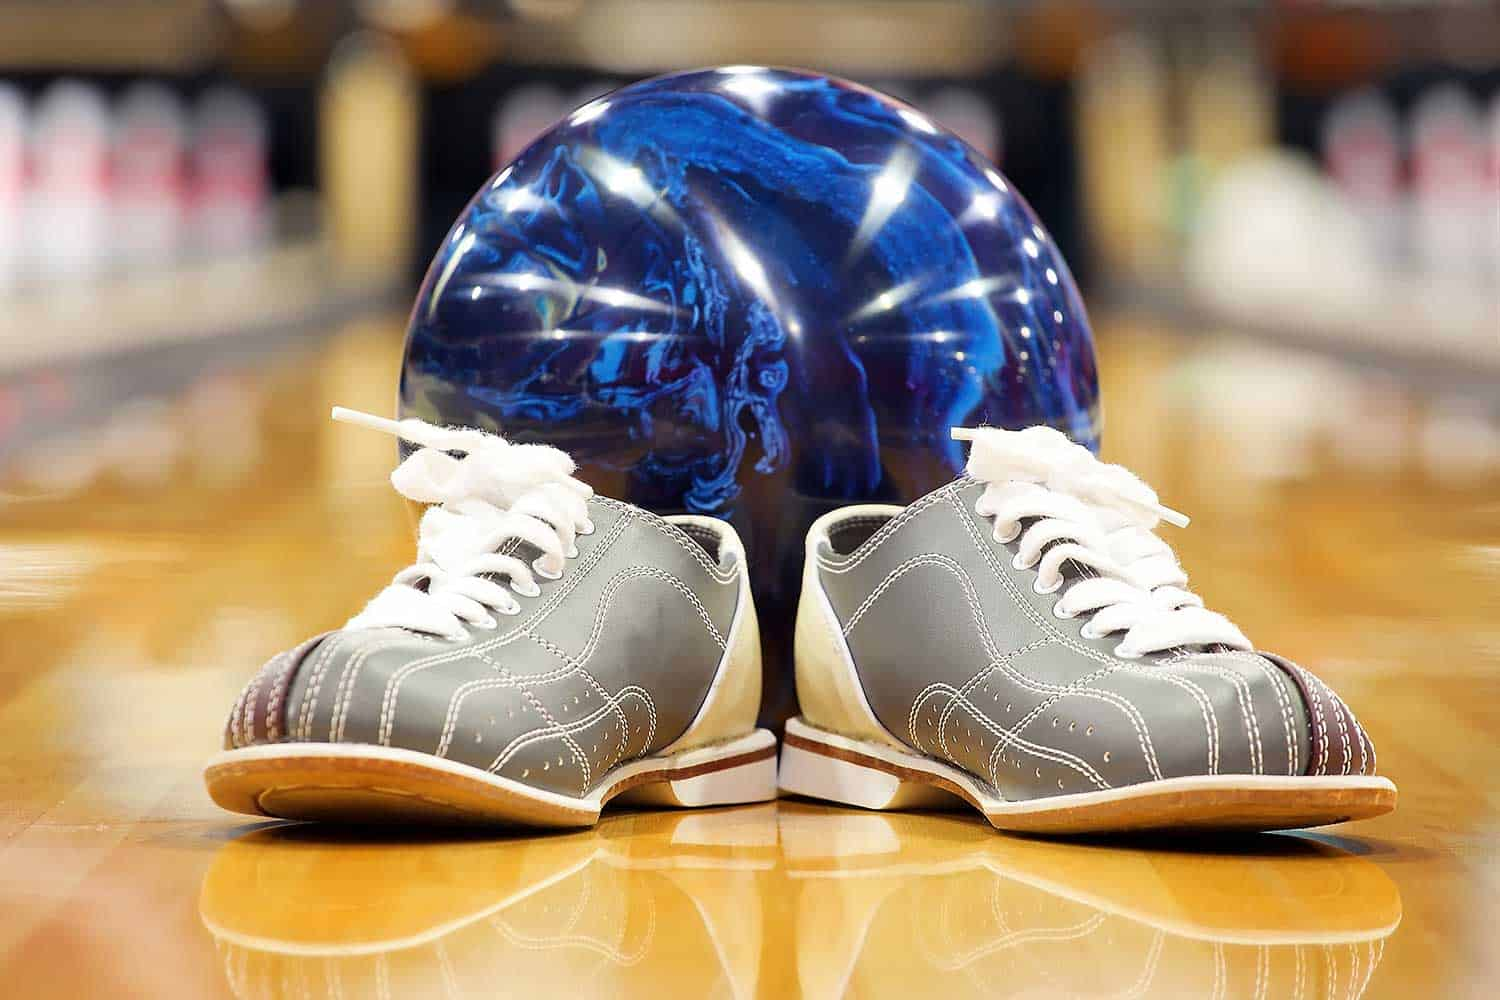 Bowling shoes and ball for bowling game